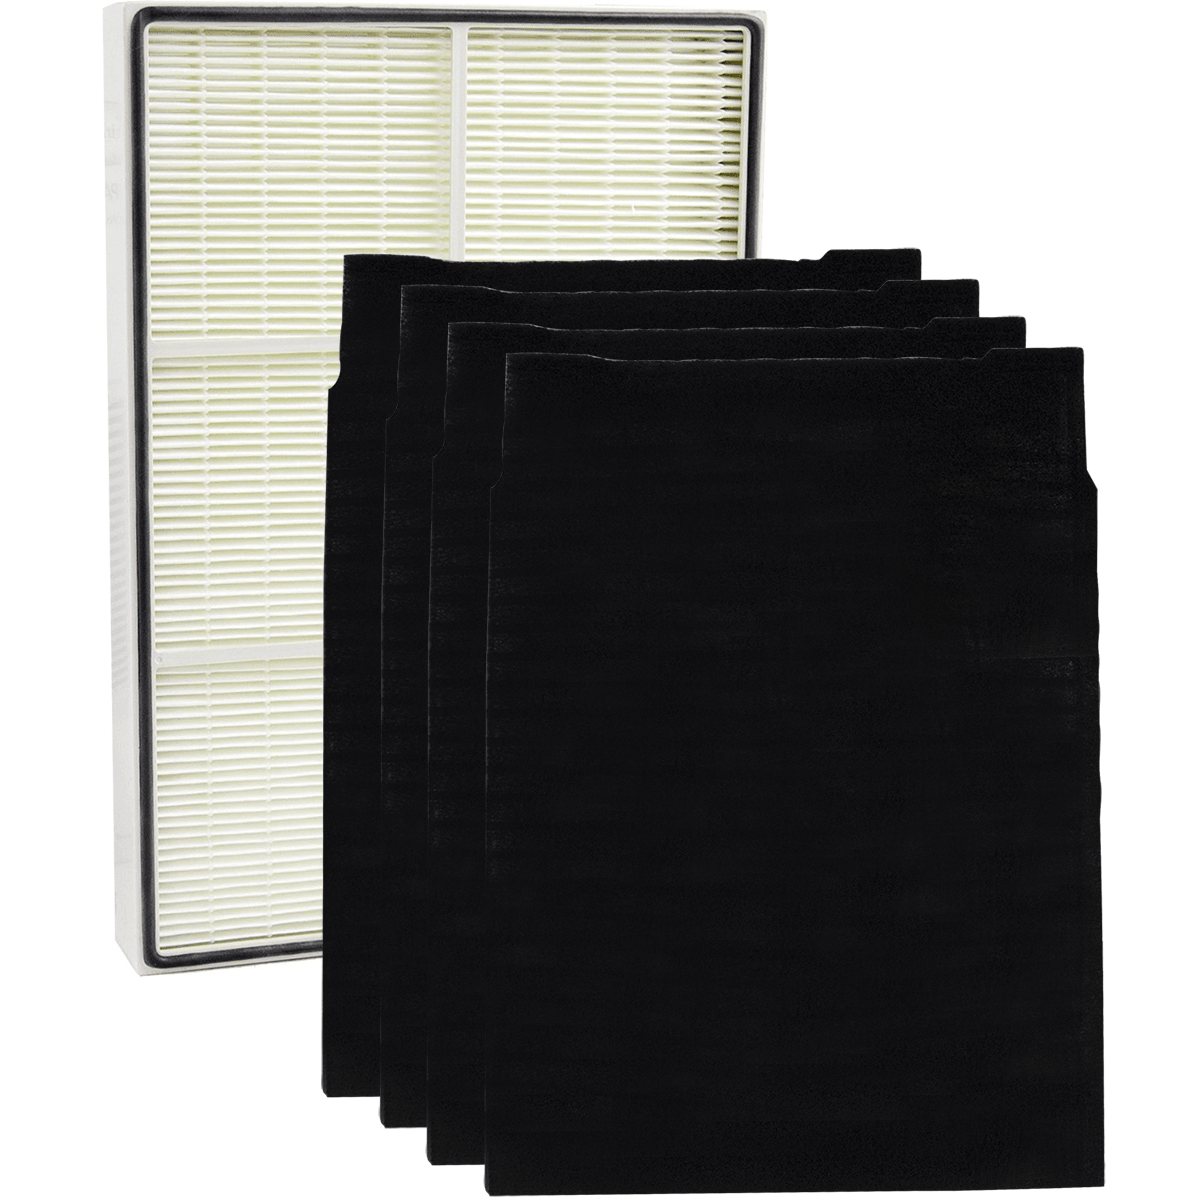 Buy Cheap Genuine Whirlpool 250 150 Filter Kit Small 1 Year